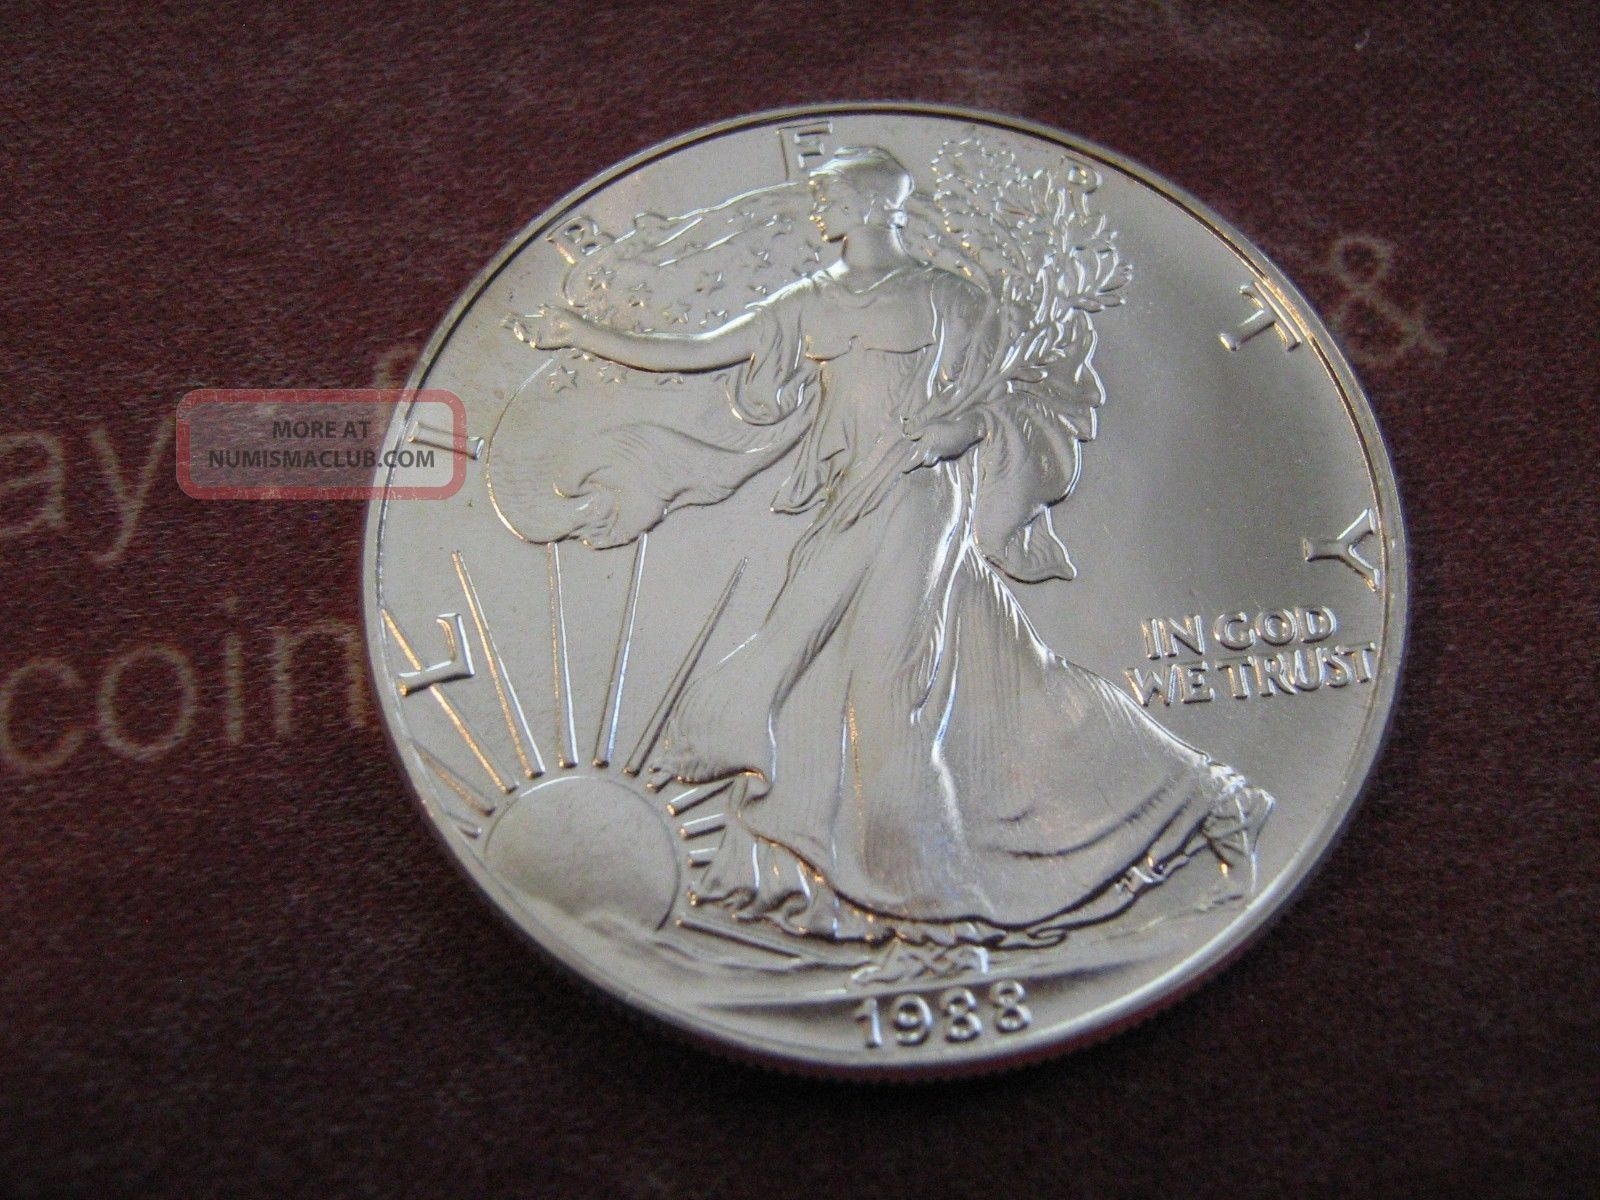 1988 Bu American Eagle Silver Dollar Coin Silver photo